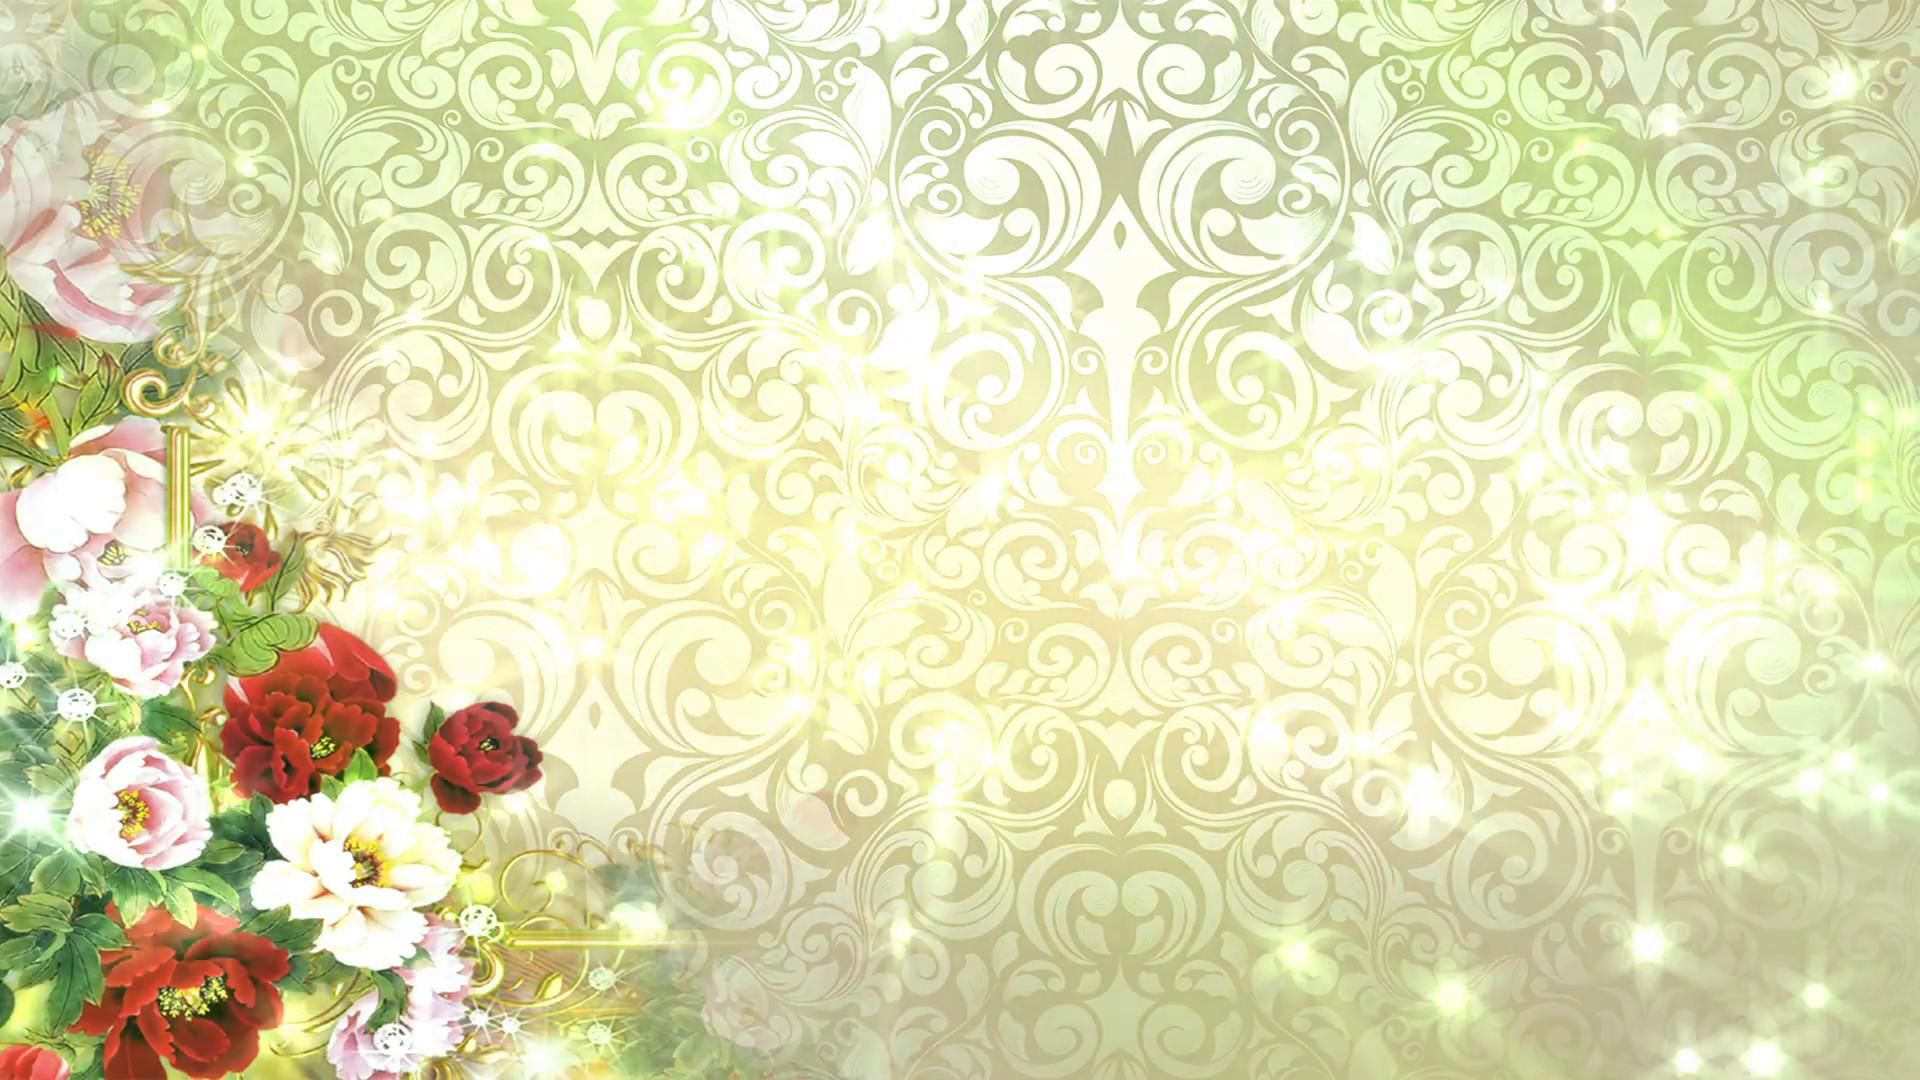 Wedding Background Wallpaper 50 Image Collections Of Wallpapers Wedding Background Images Abstract Flowers Background Images Hd